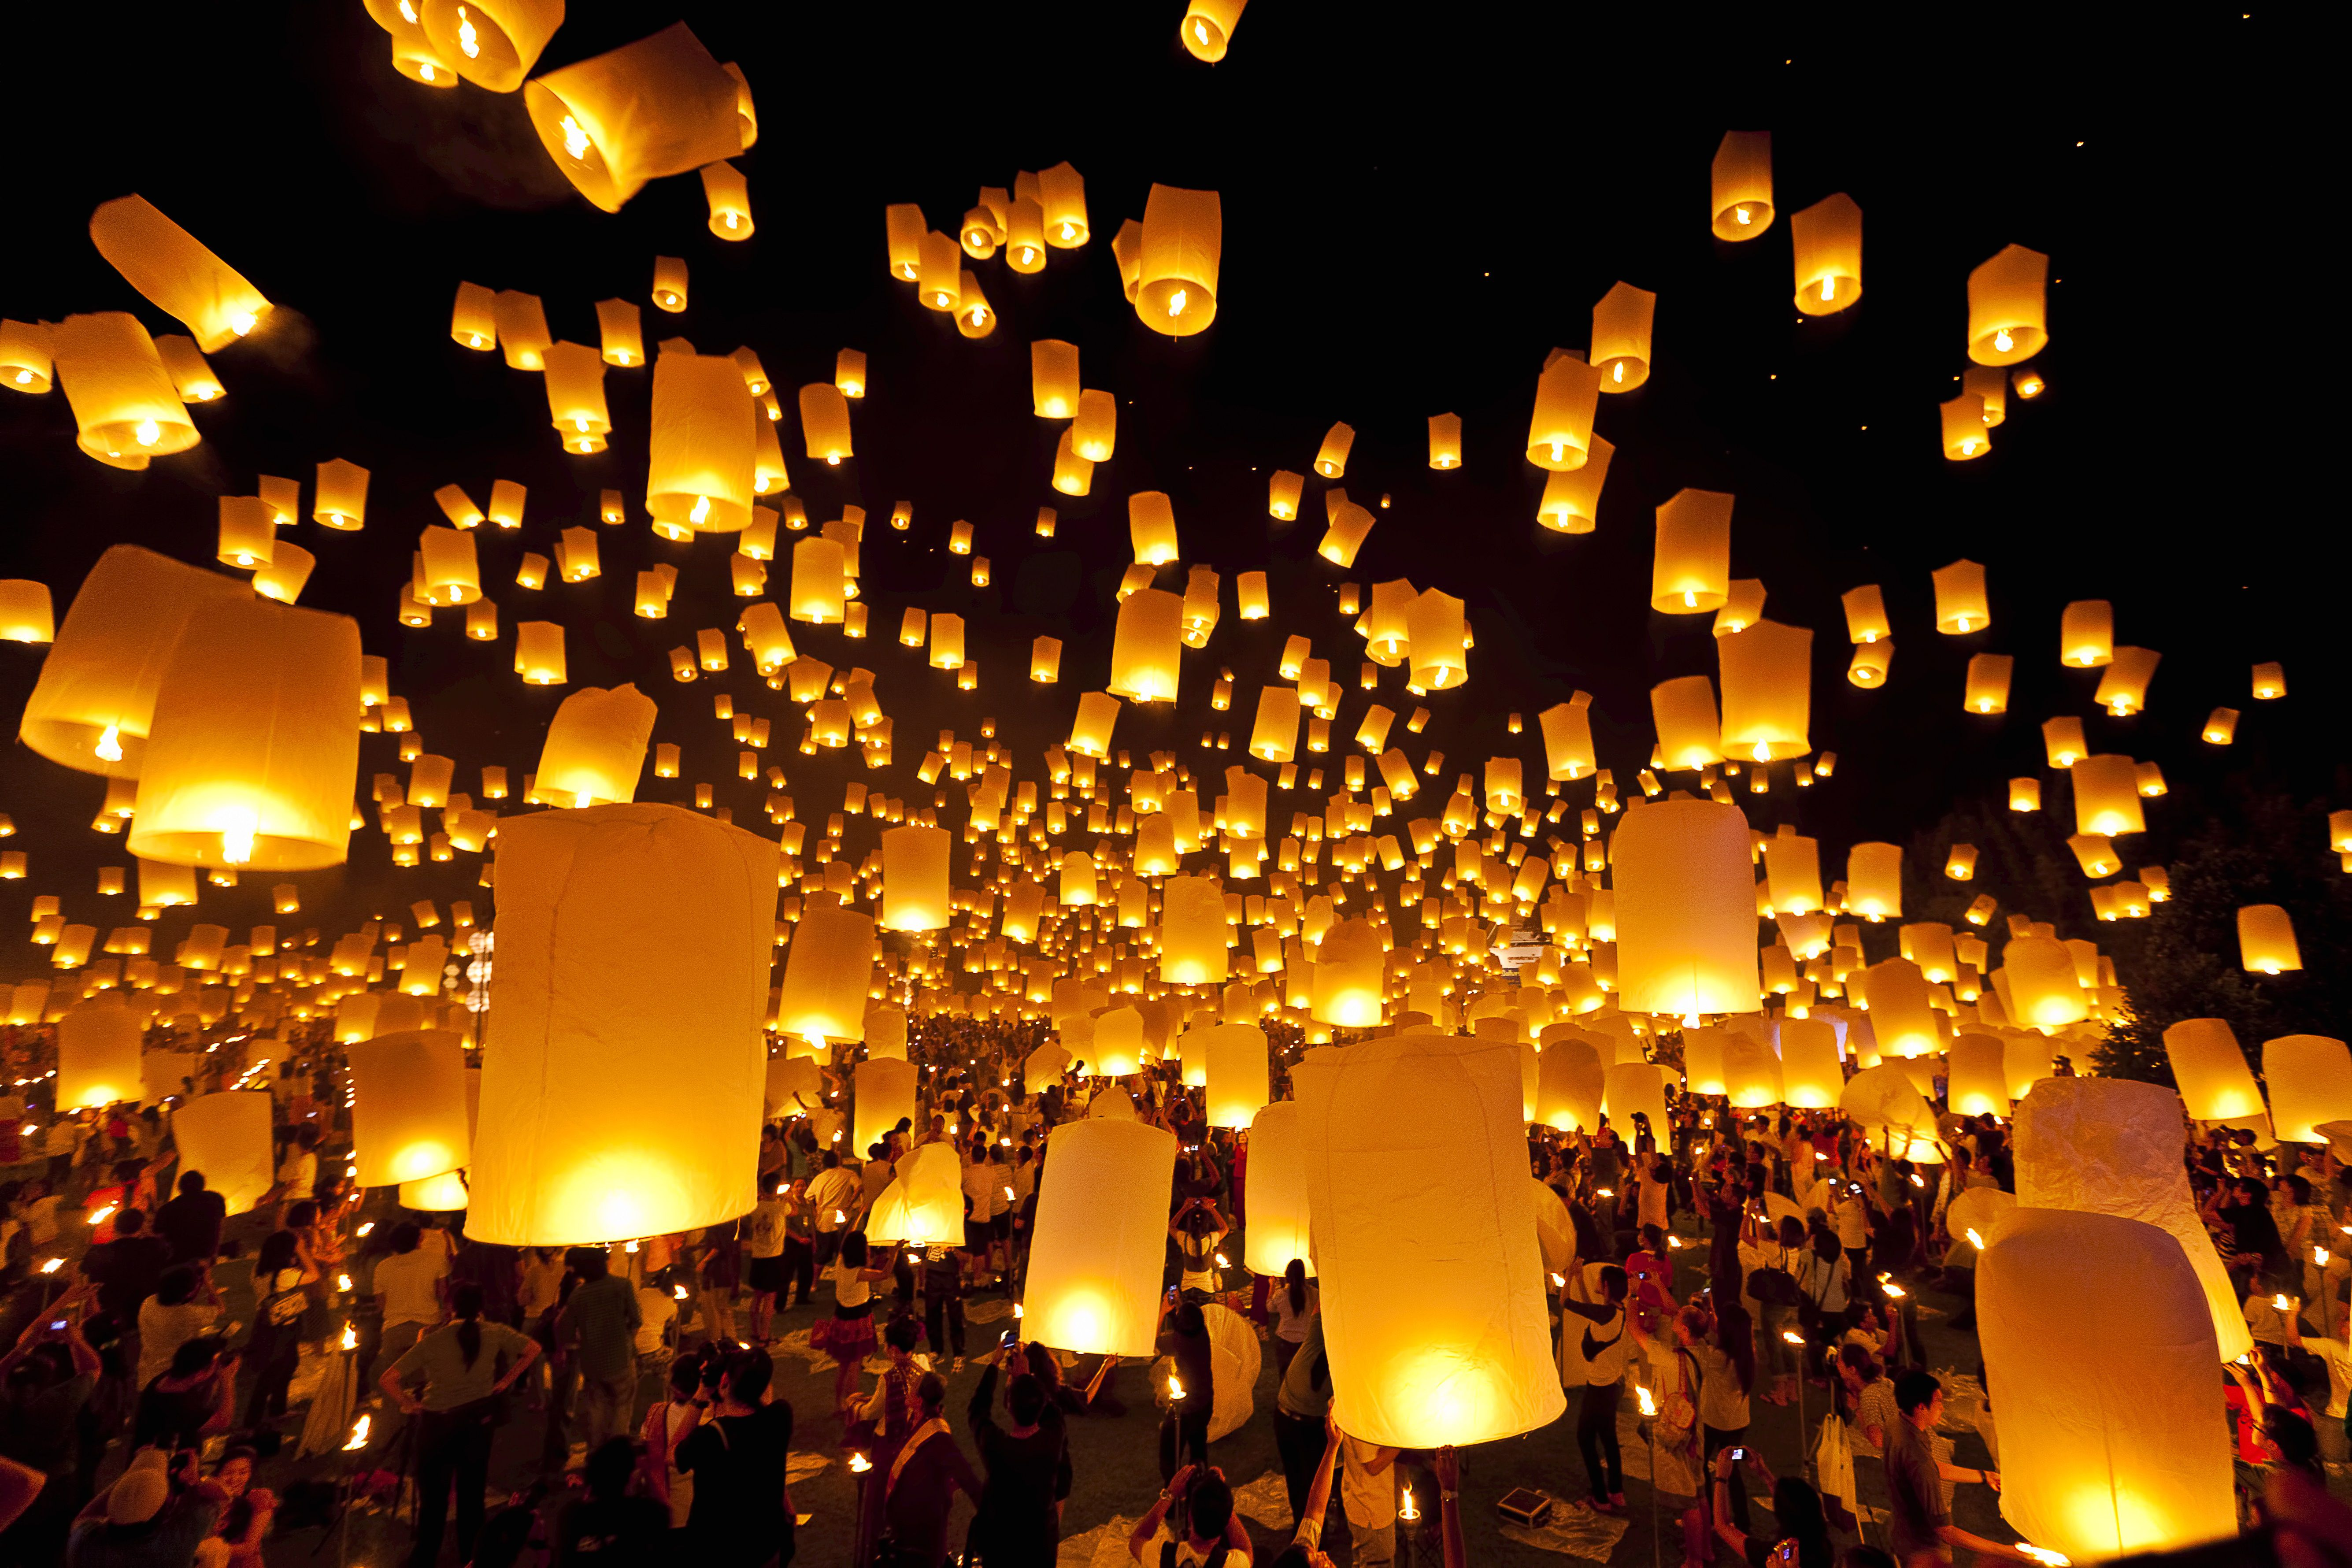 Chinese New Year Lantern Wishes for Flying Lantern Lights  181plt